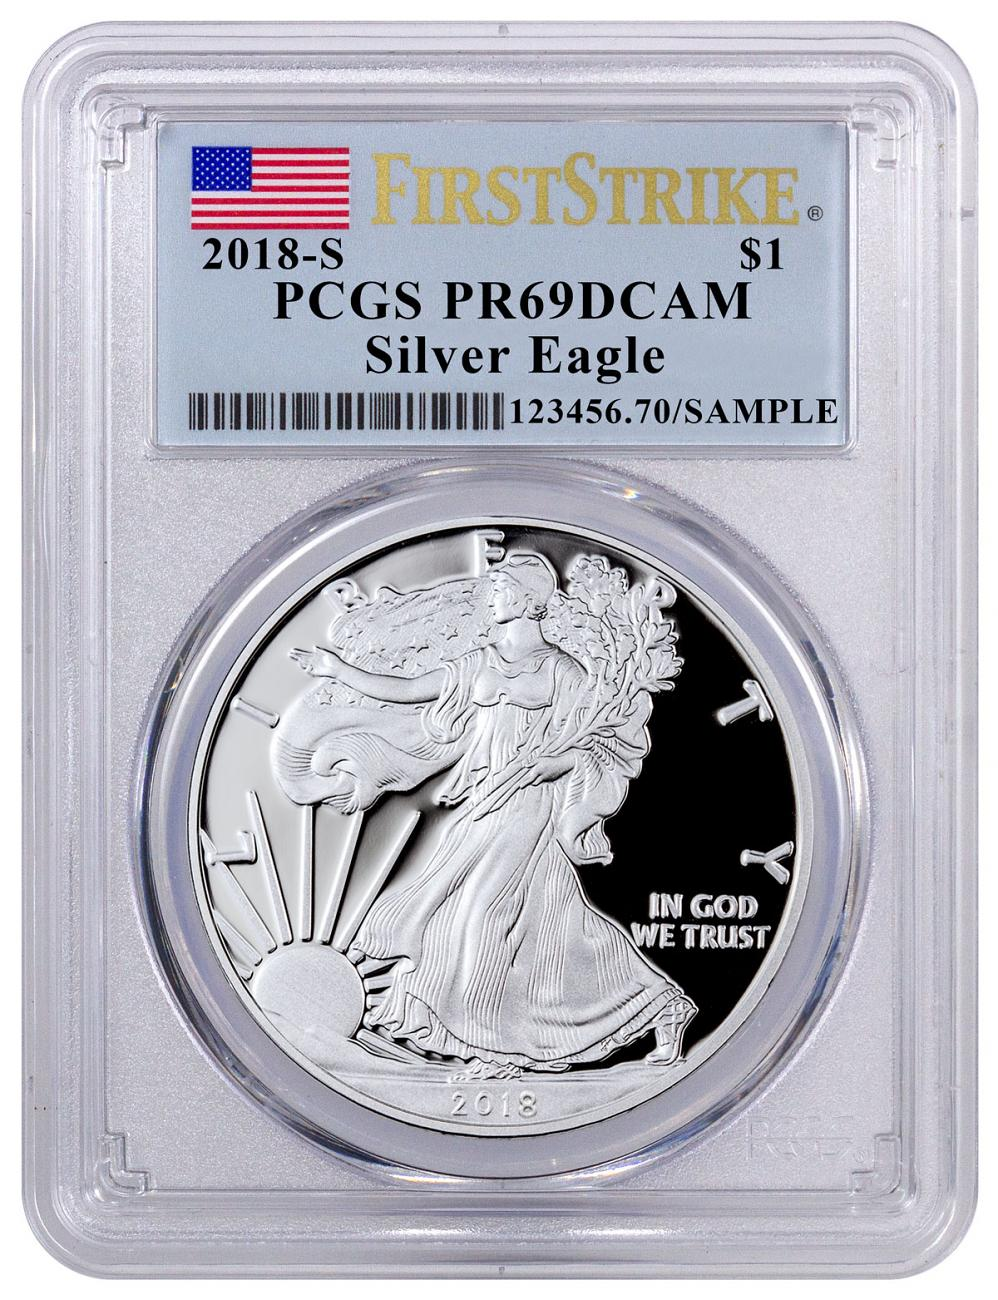 2018-S Proof American Silver Eagle PCGS PR69 DCAM FS Flag Label